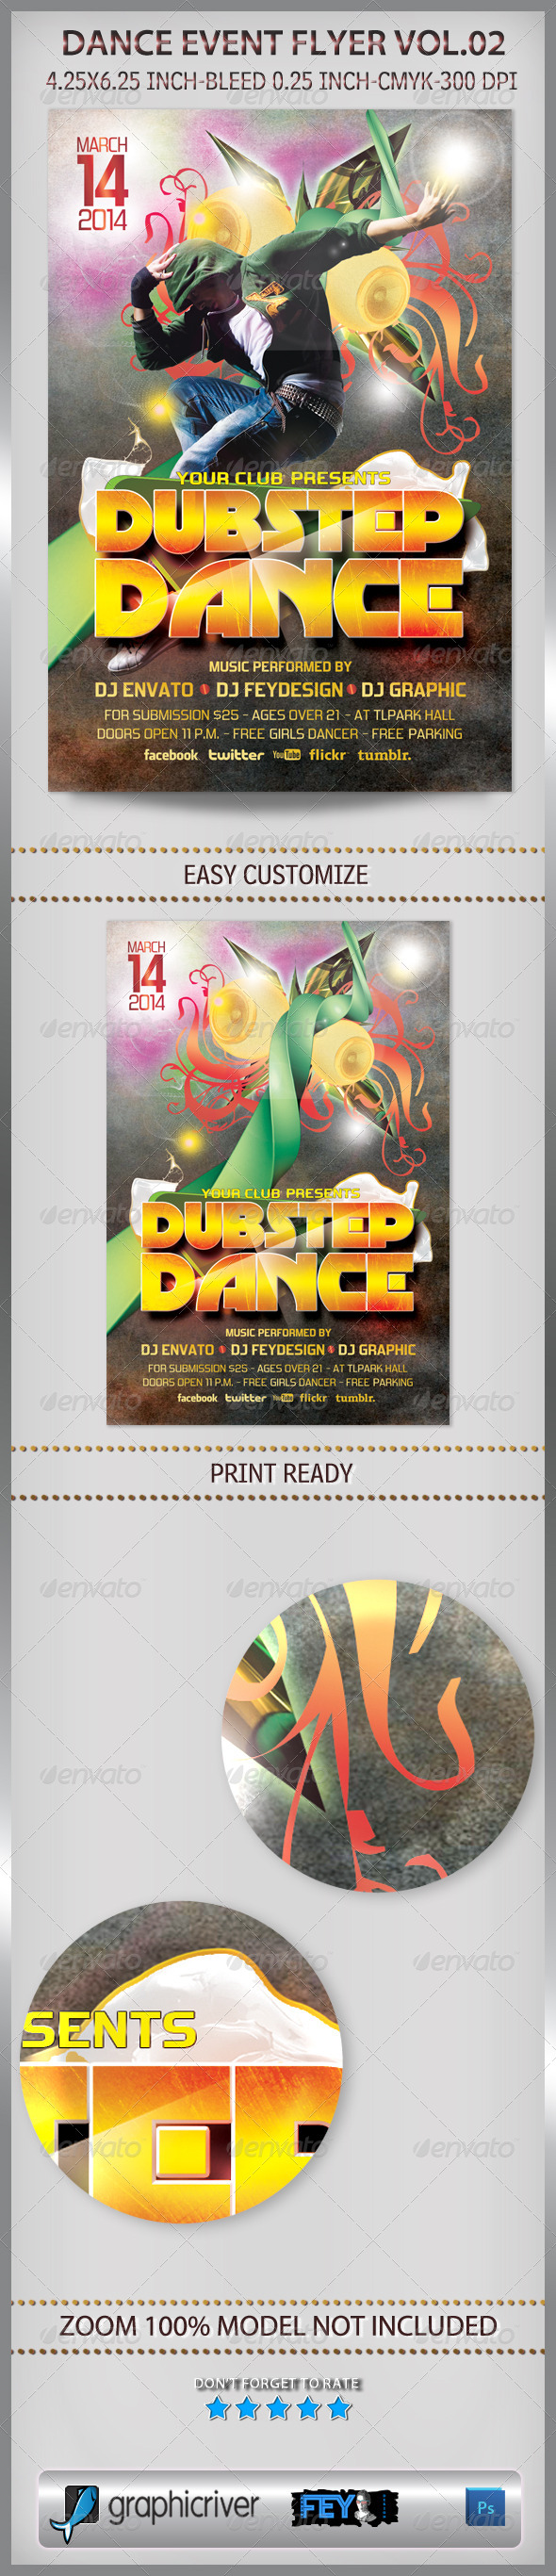 GraphicRiver Dance Event Flyer Vol.02 6703021